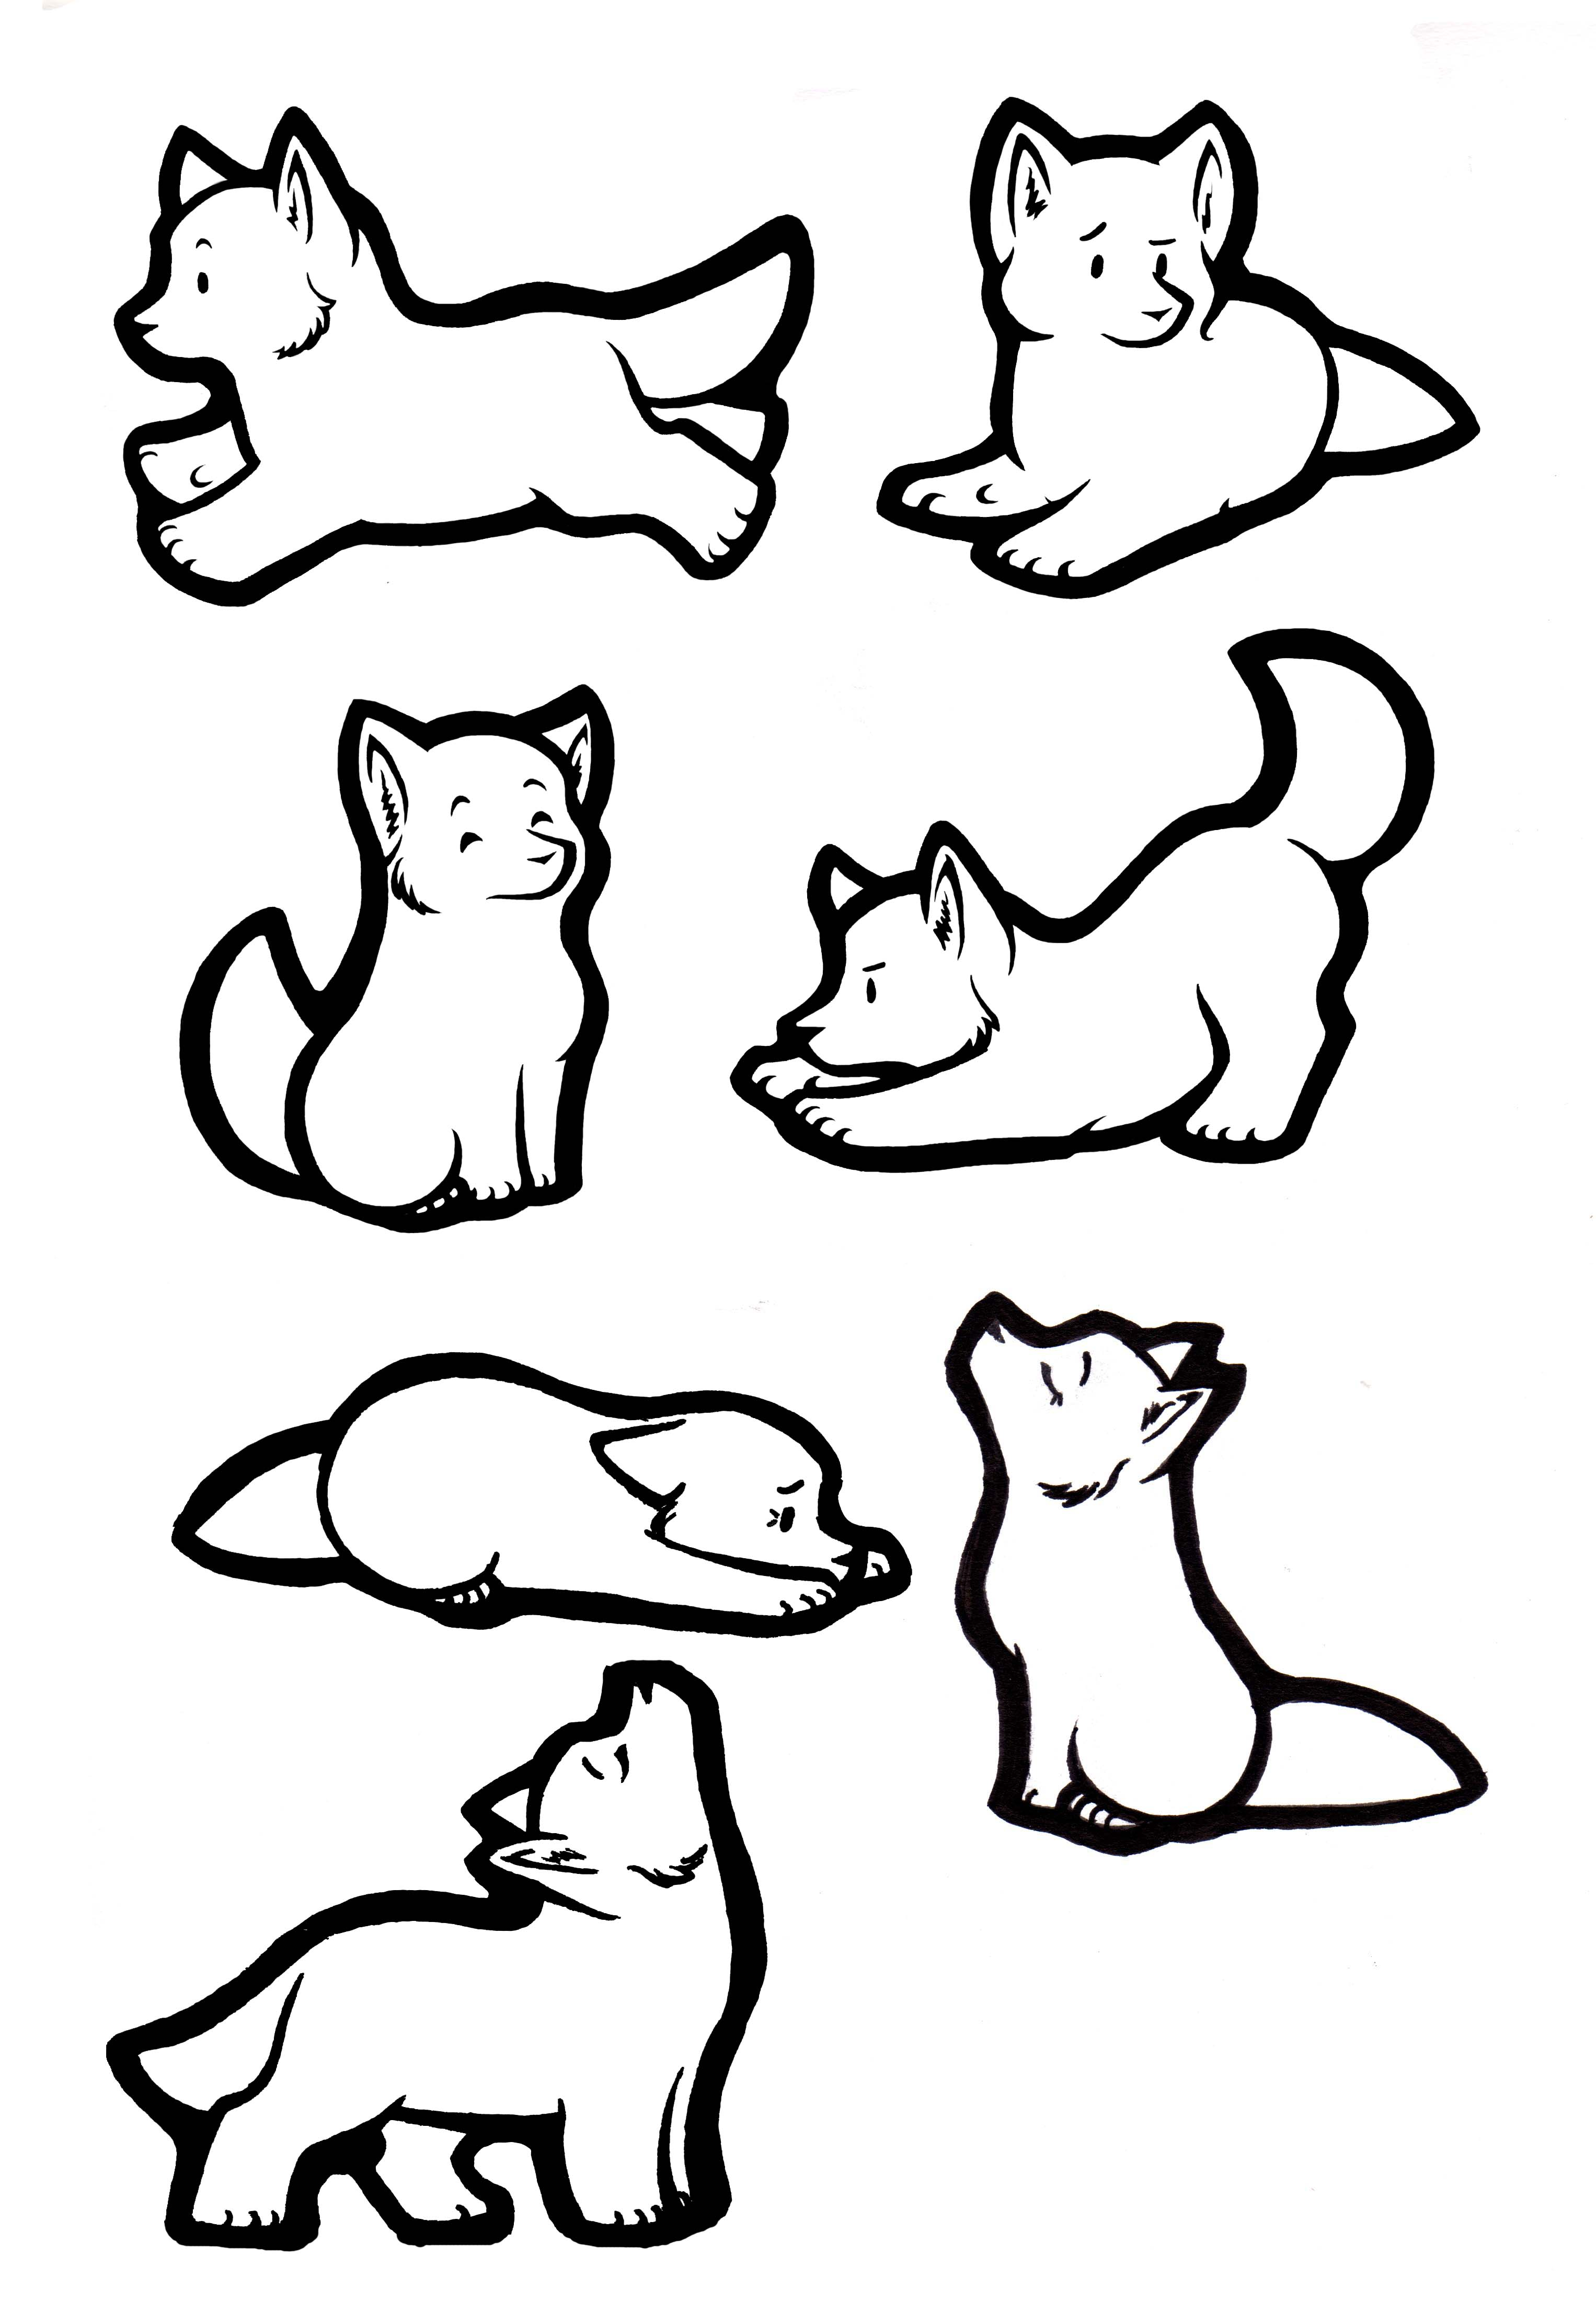 3053x4404 How To Draw A Wolf Pup Step By Step Tutorial. Download. Full Size